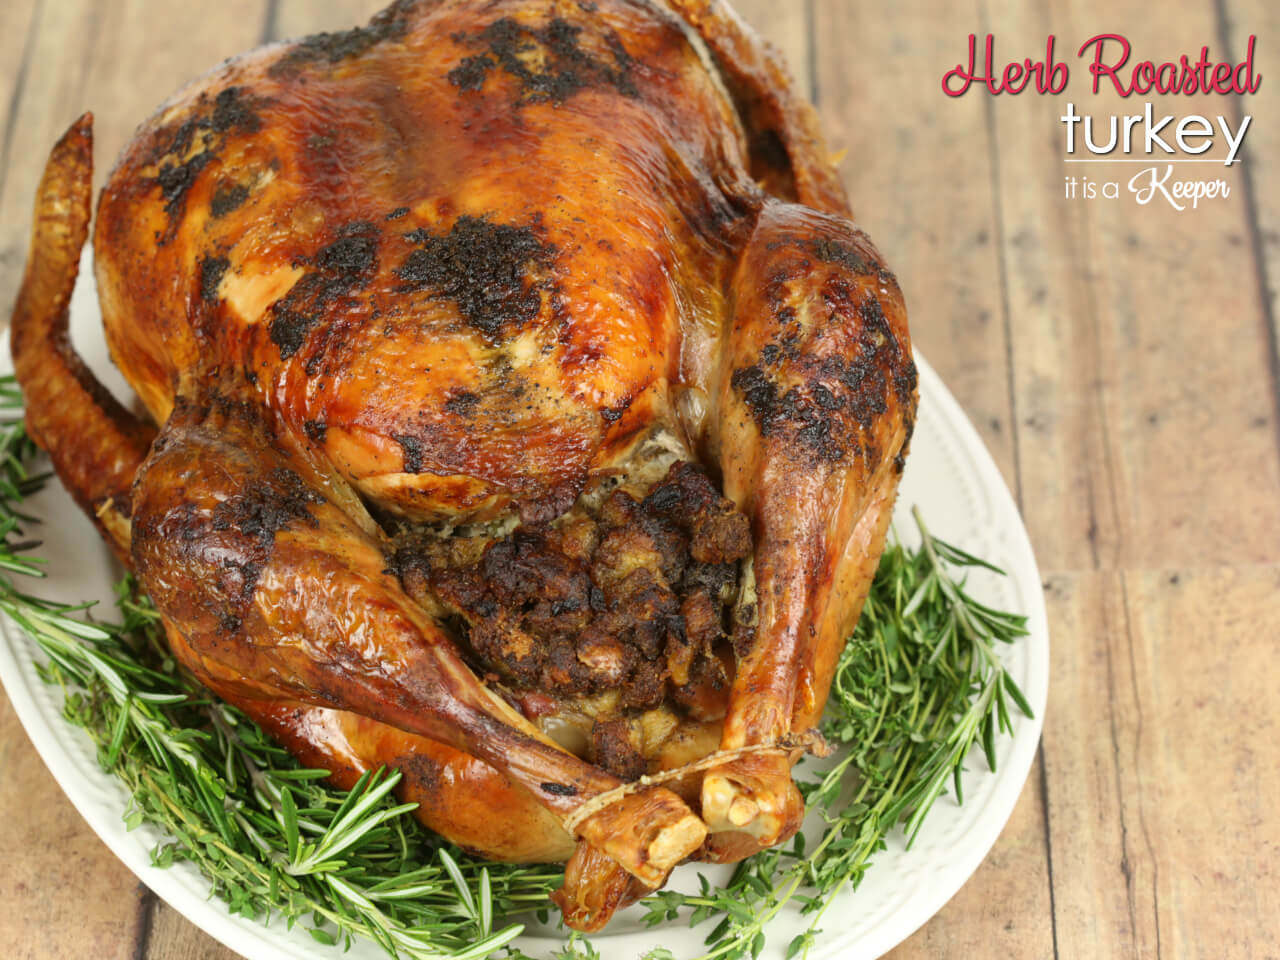 Herb Roasted Turkey - this is the recipe I use for every holiday and it always comes out juicy and flavorful